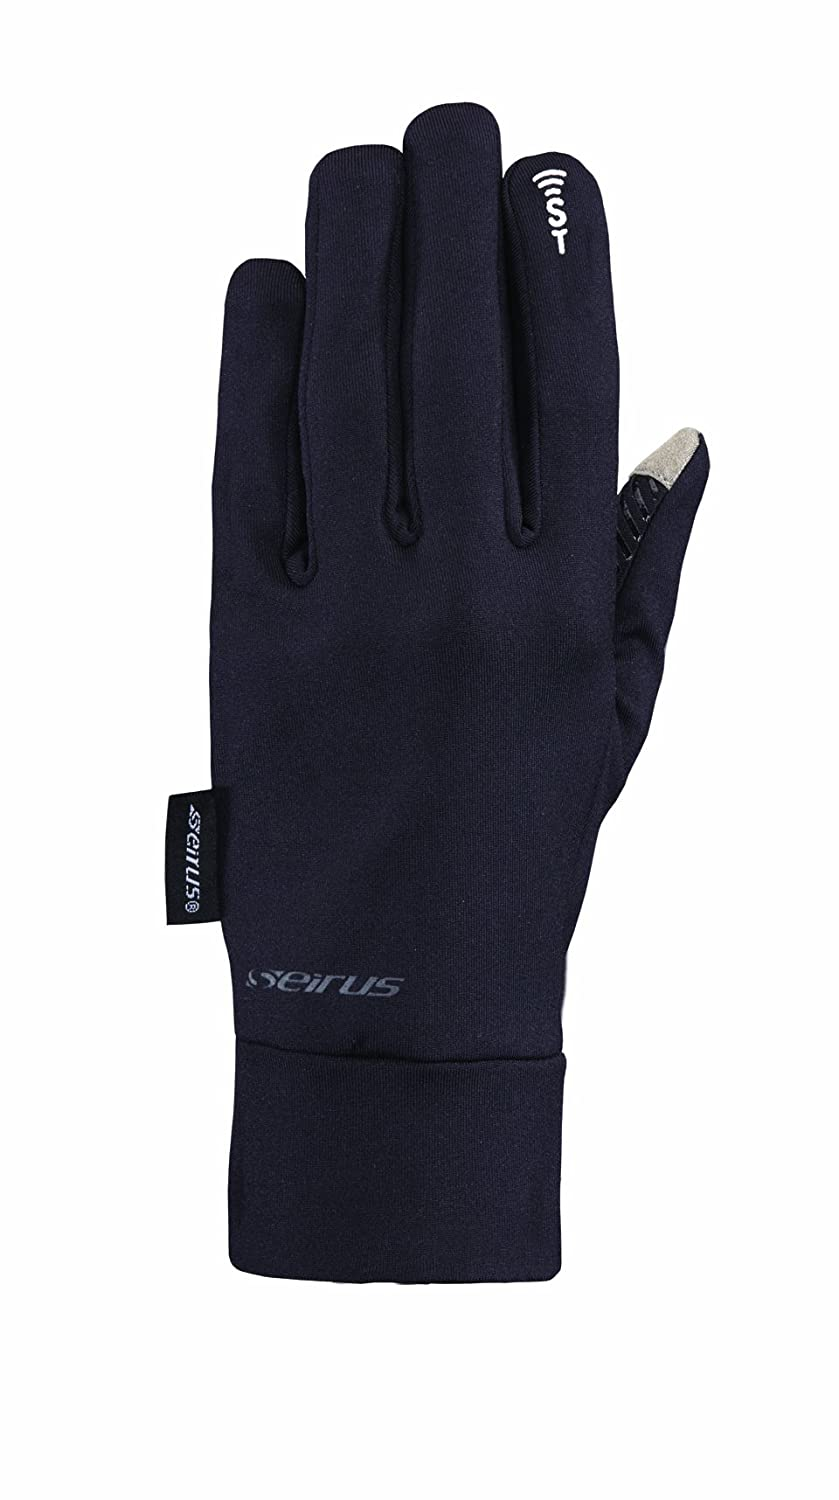 TOP SELLER Seirus Innovation Texting Cold Weather Glove Liner